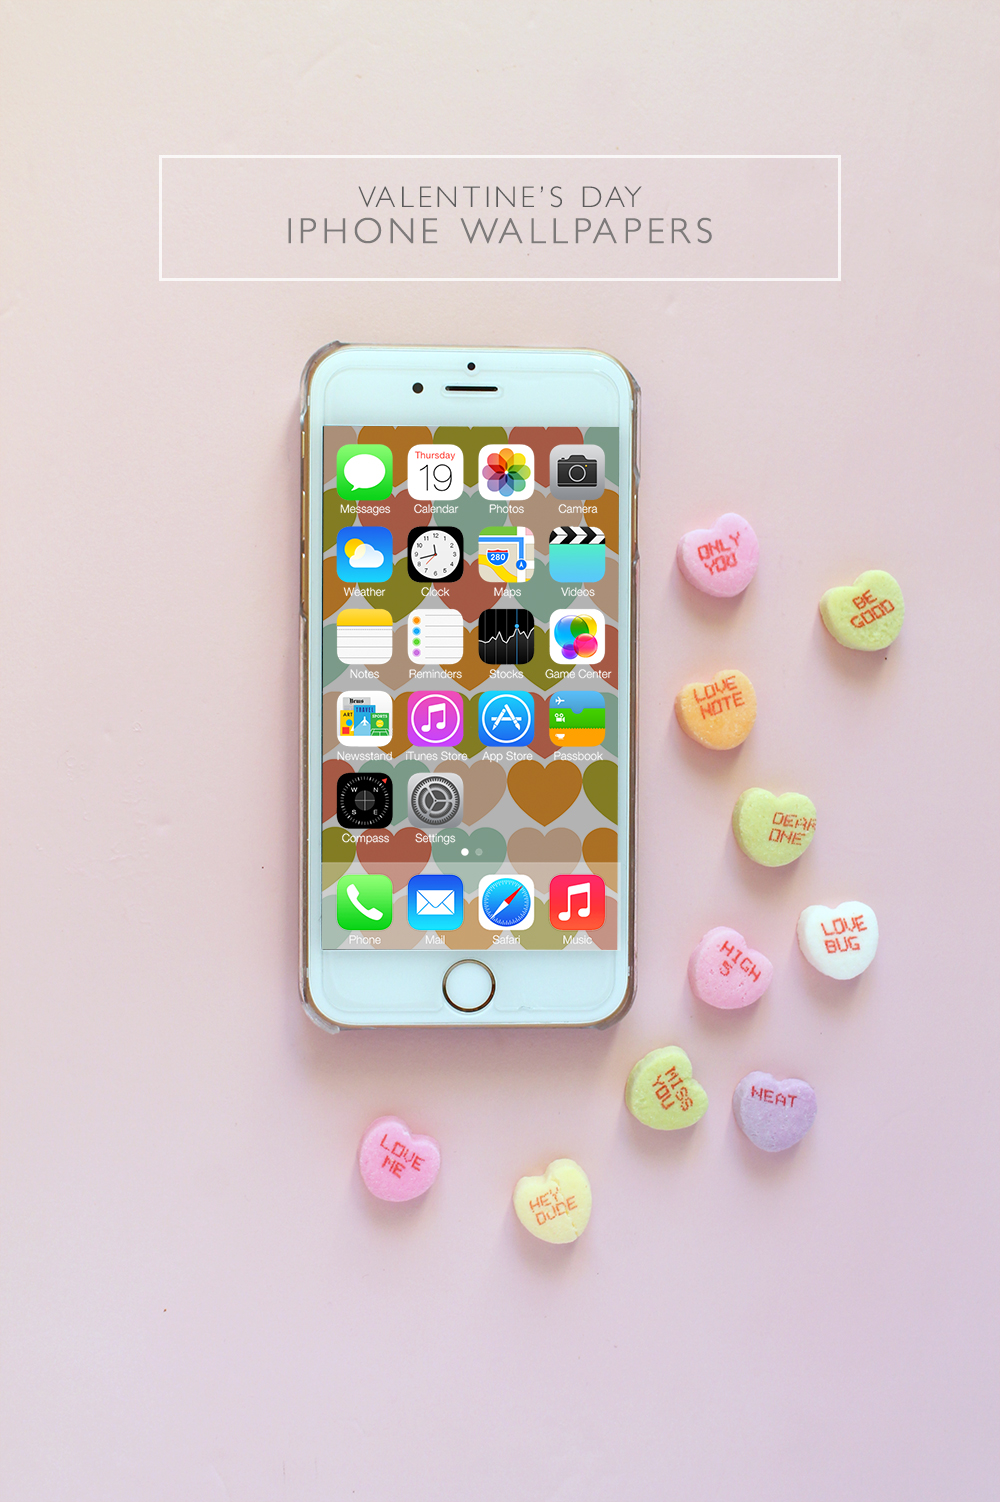 Download these Free Valentine's Day iPhone Wallpapers | Squirrelly Minds